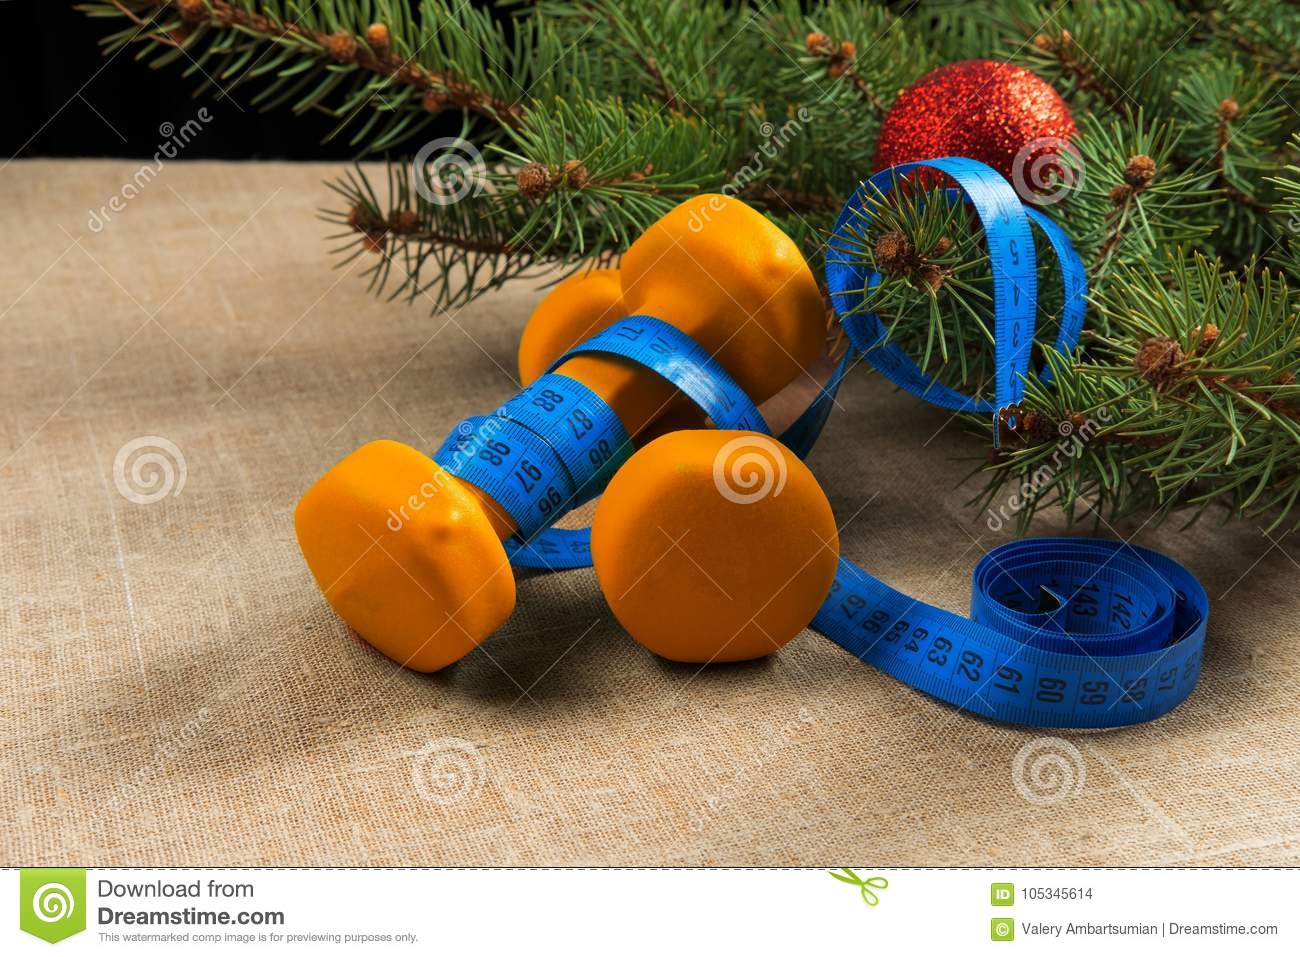 Christmas Sports Background.Two Orange Dumbbells Fitness Christmas Tree With Red New